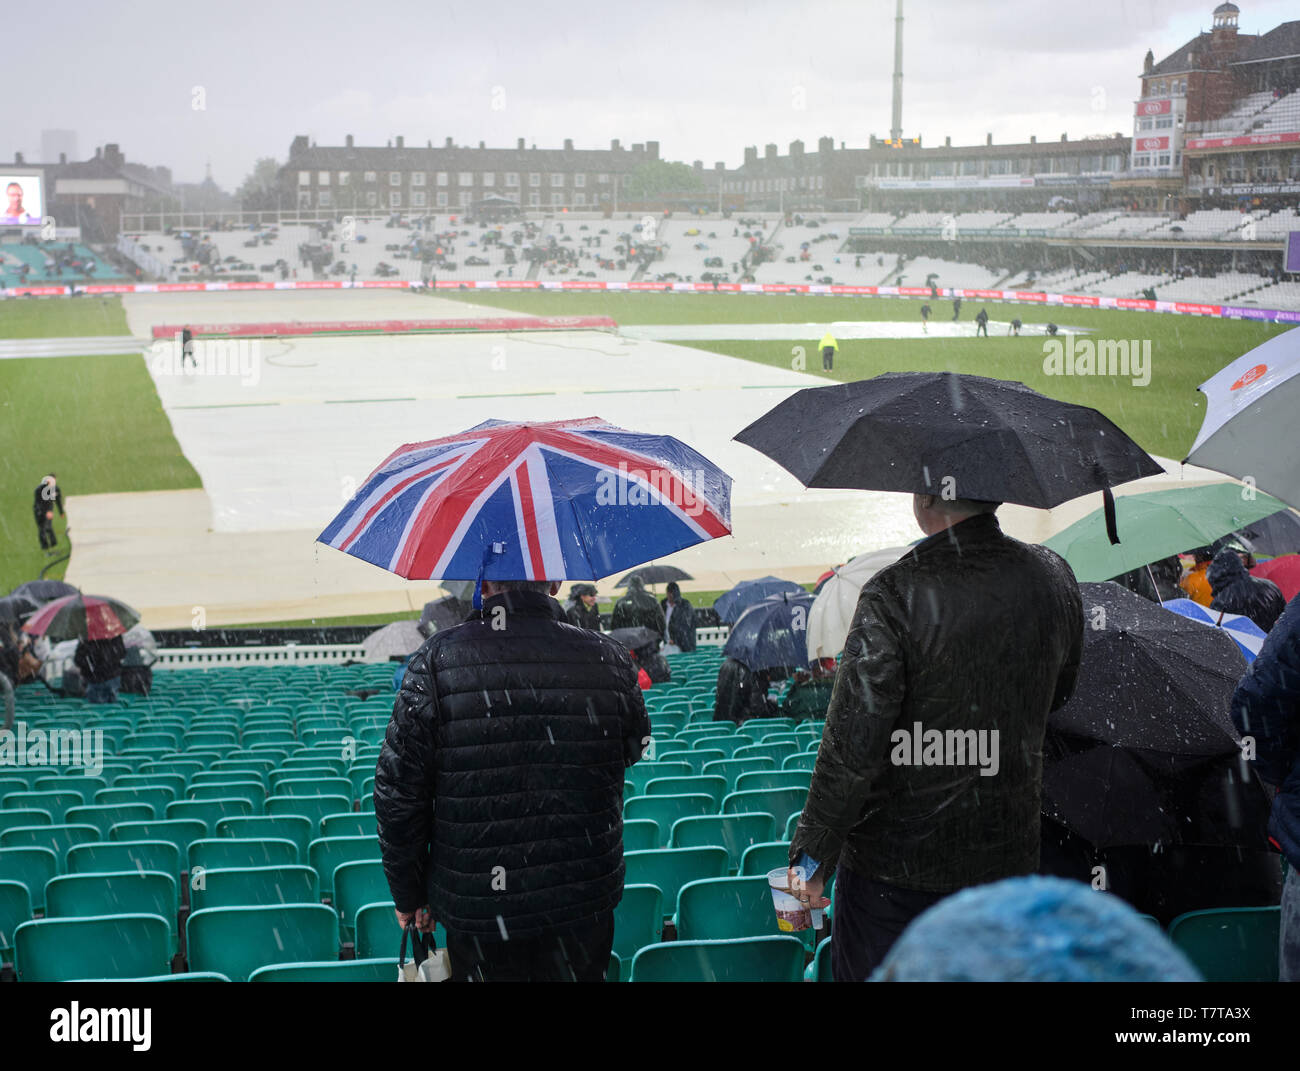 London, UK. 8th May 2019.  UK Weather: Ticket holders wait  under umbrellas as heavy rain and hail  stops play during the first One Day International between England and Pakistan at The Kia Oval.  Credit: Thomas Bowles/Alamy Live News Stock Photo